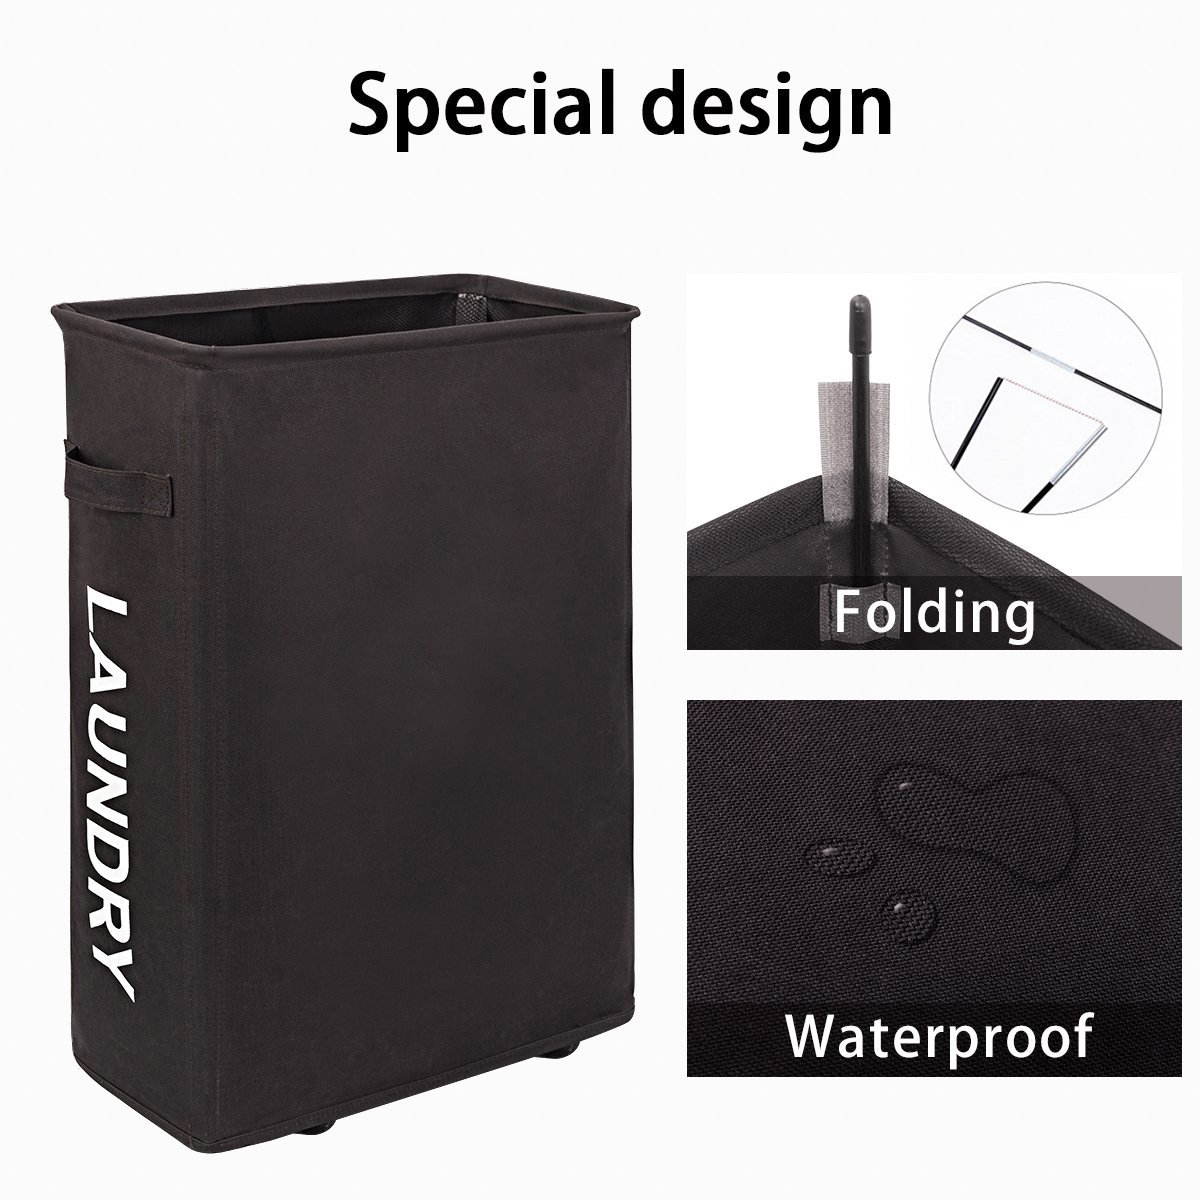 WOWLIVE Thin Laundry Hamper Collapsible Rolling Slim Tall Laundry Basket Wheels Corner Standing Dirty Clothes Organizer Hamper (Chocolate Brown)